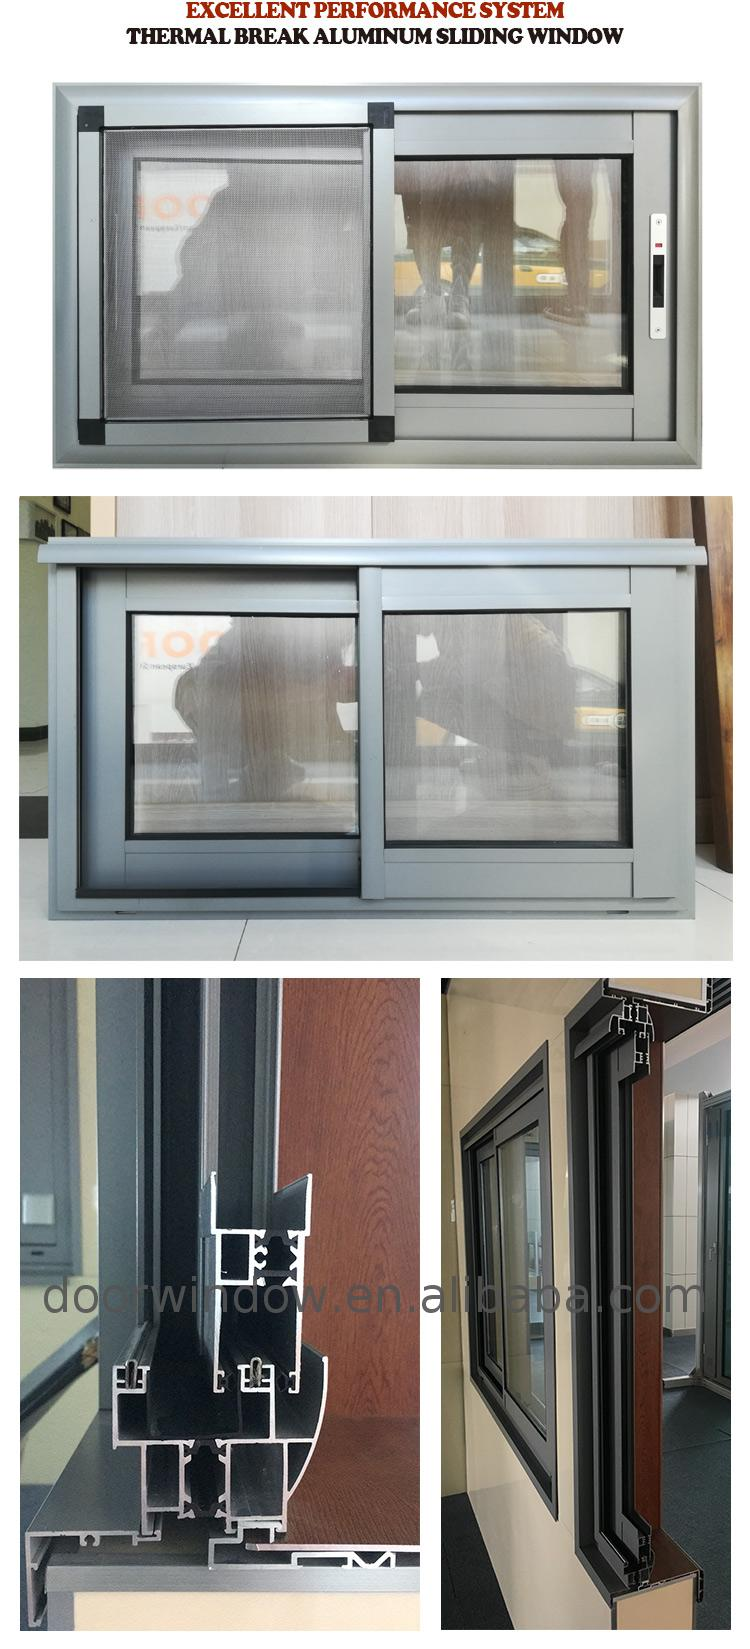 High temperature glass windows general aluminum exterior